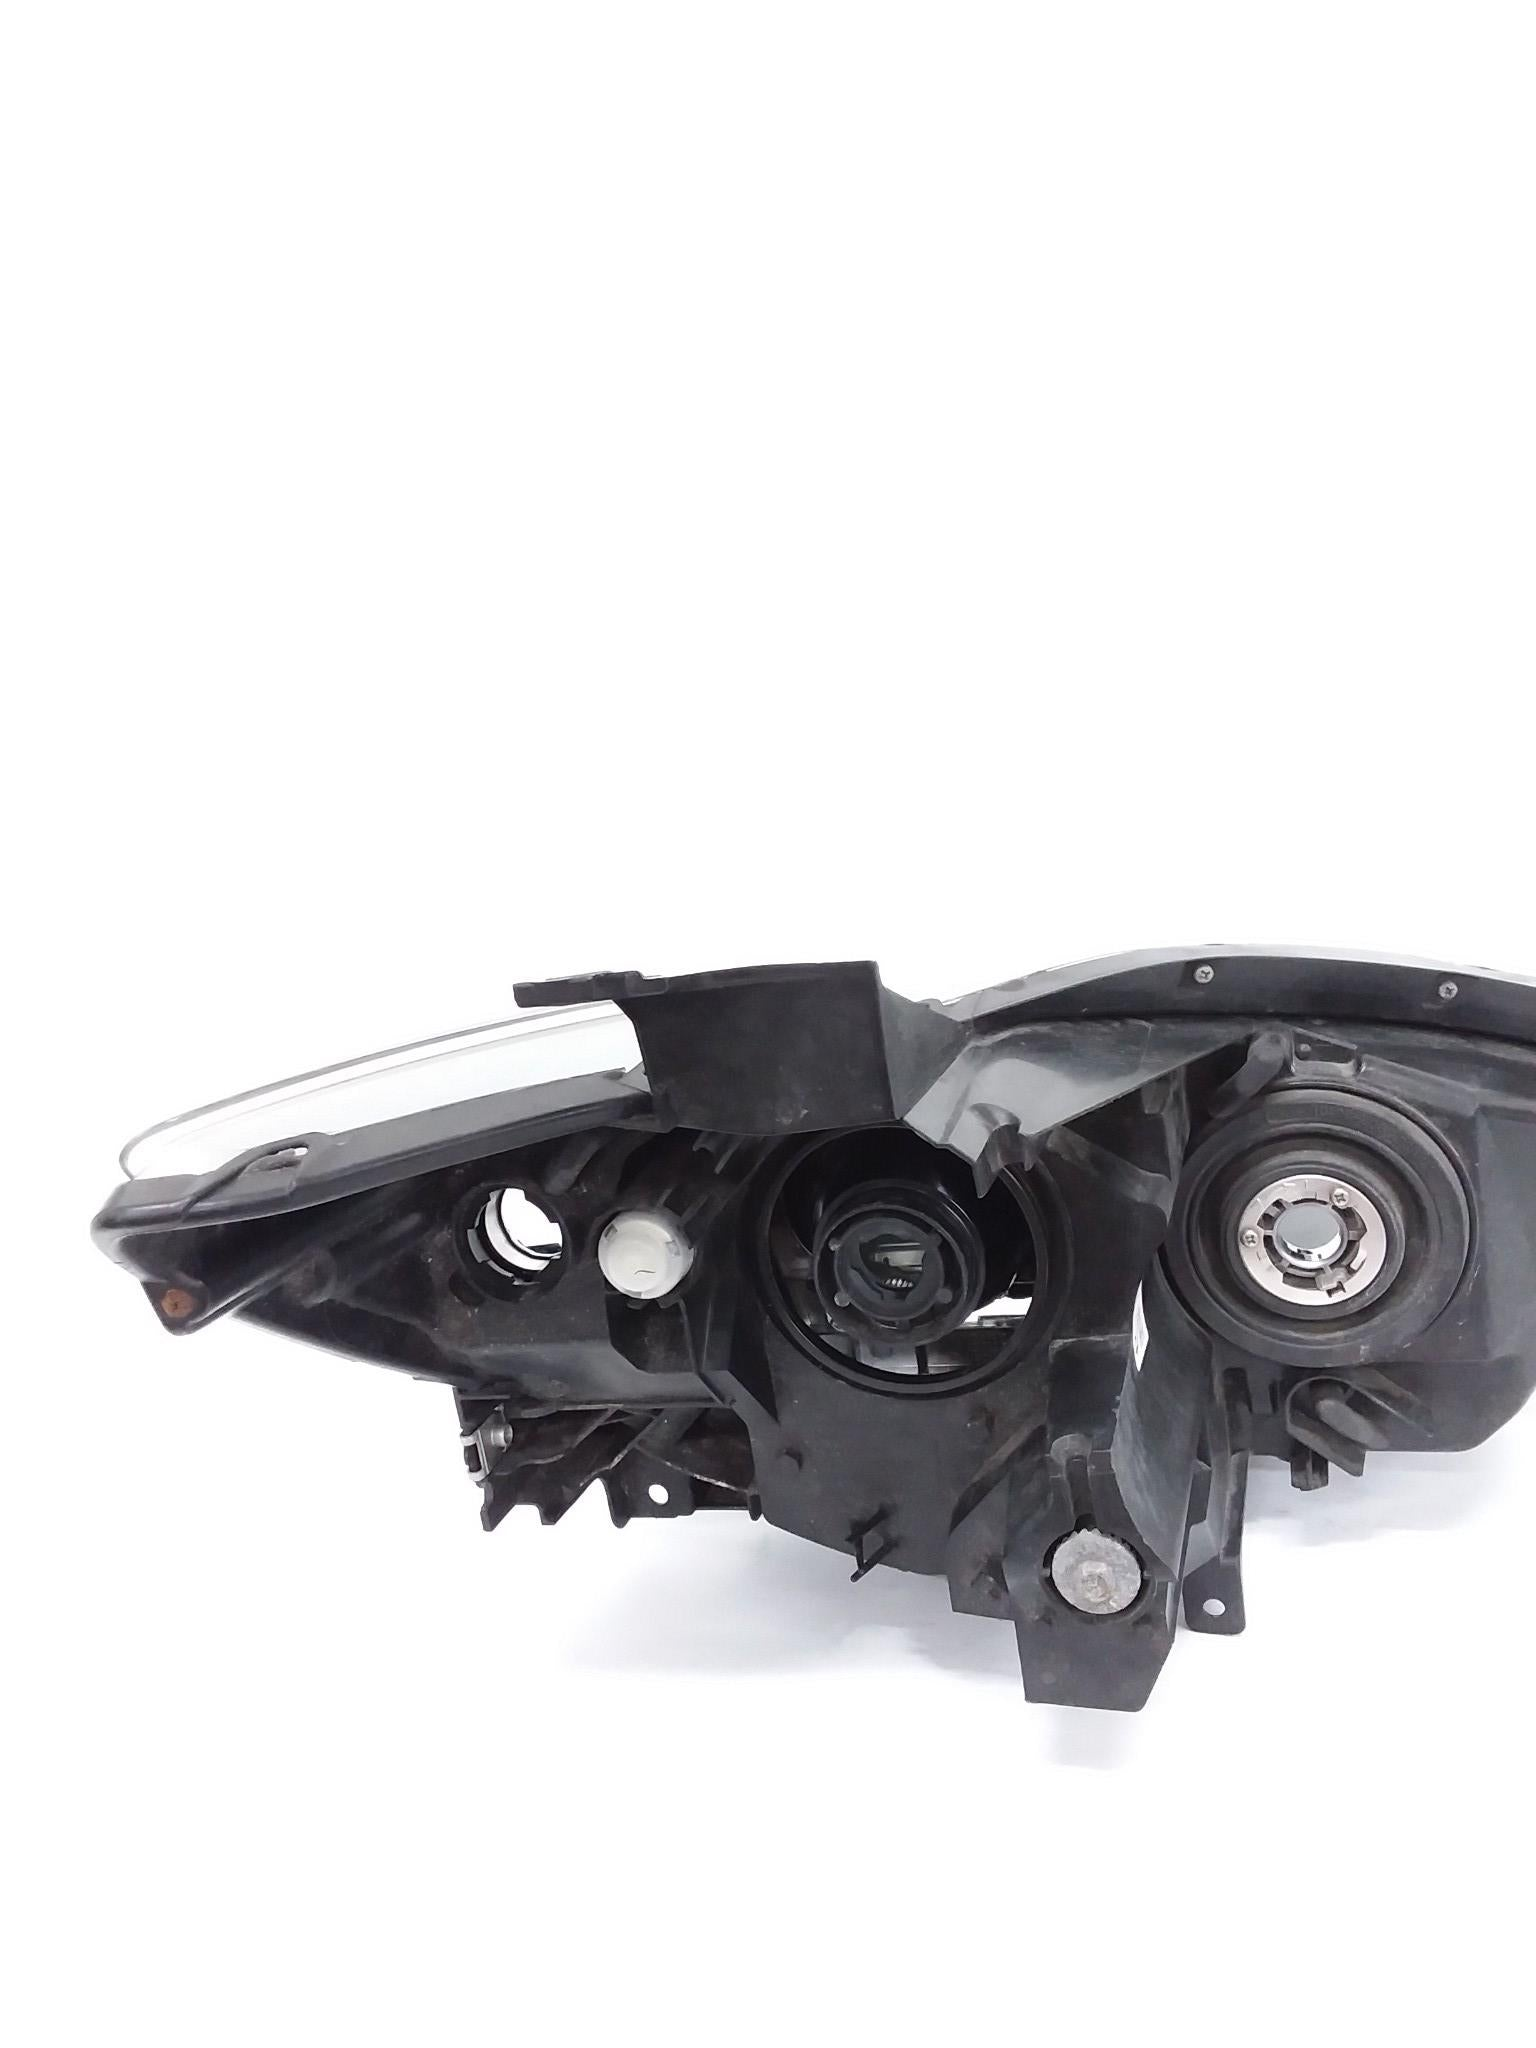 MAZDA 3 LEFT DRIVER LH SIDE HEADLIGHT HALOGEN 2014 2015 KJ0151040 OEM - Click Receive Auto Parts